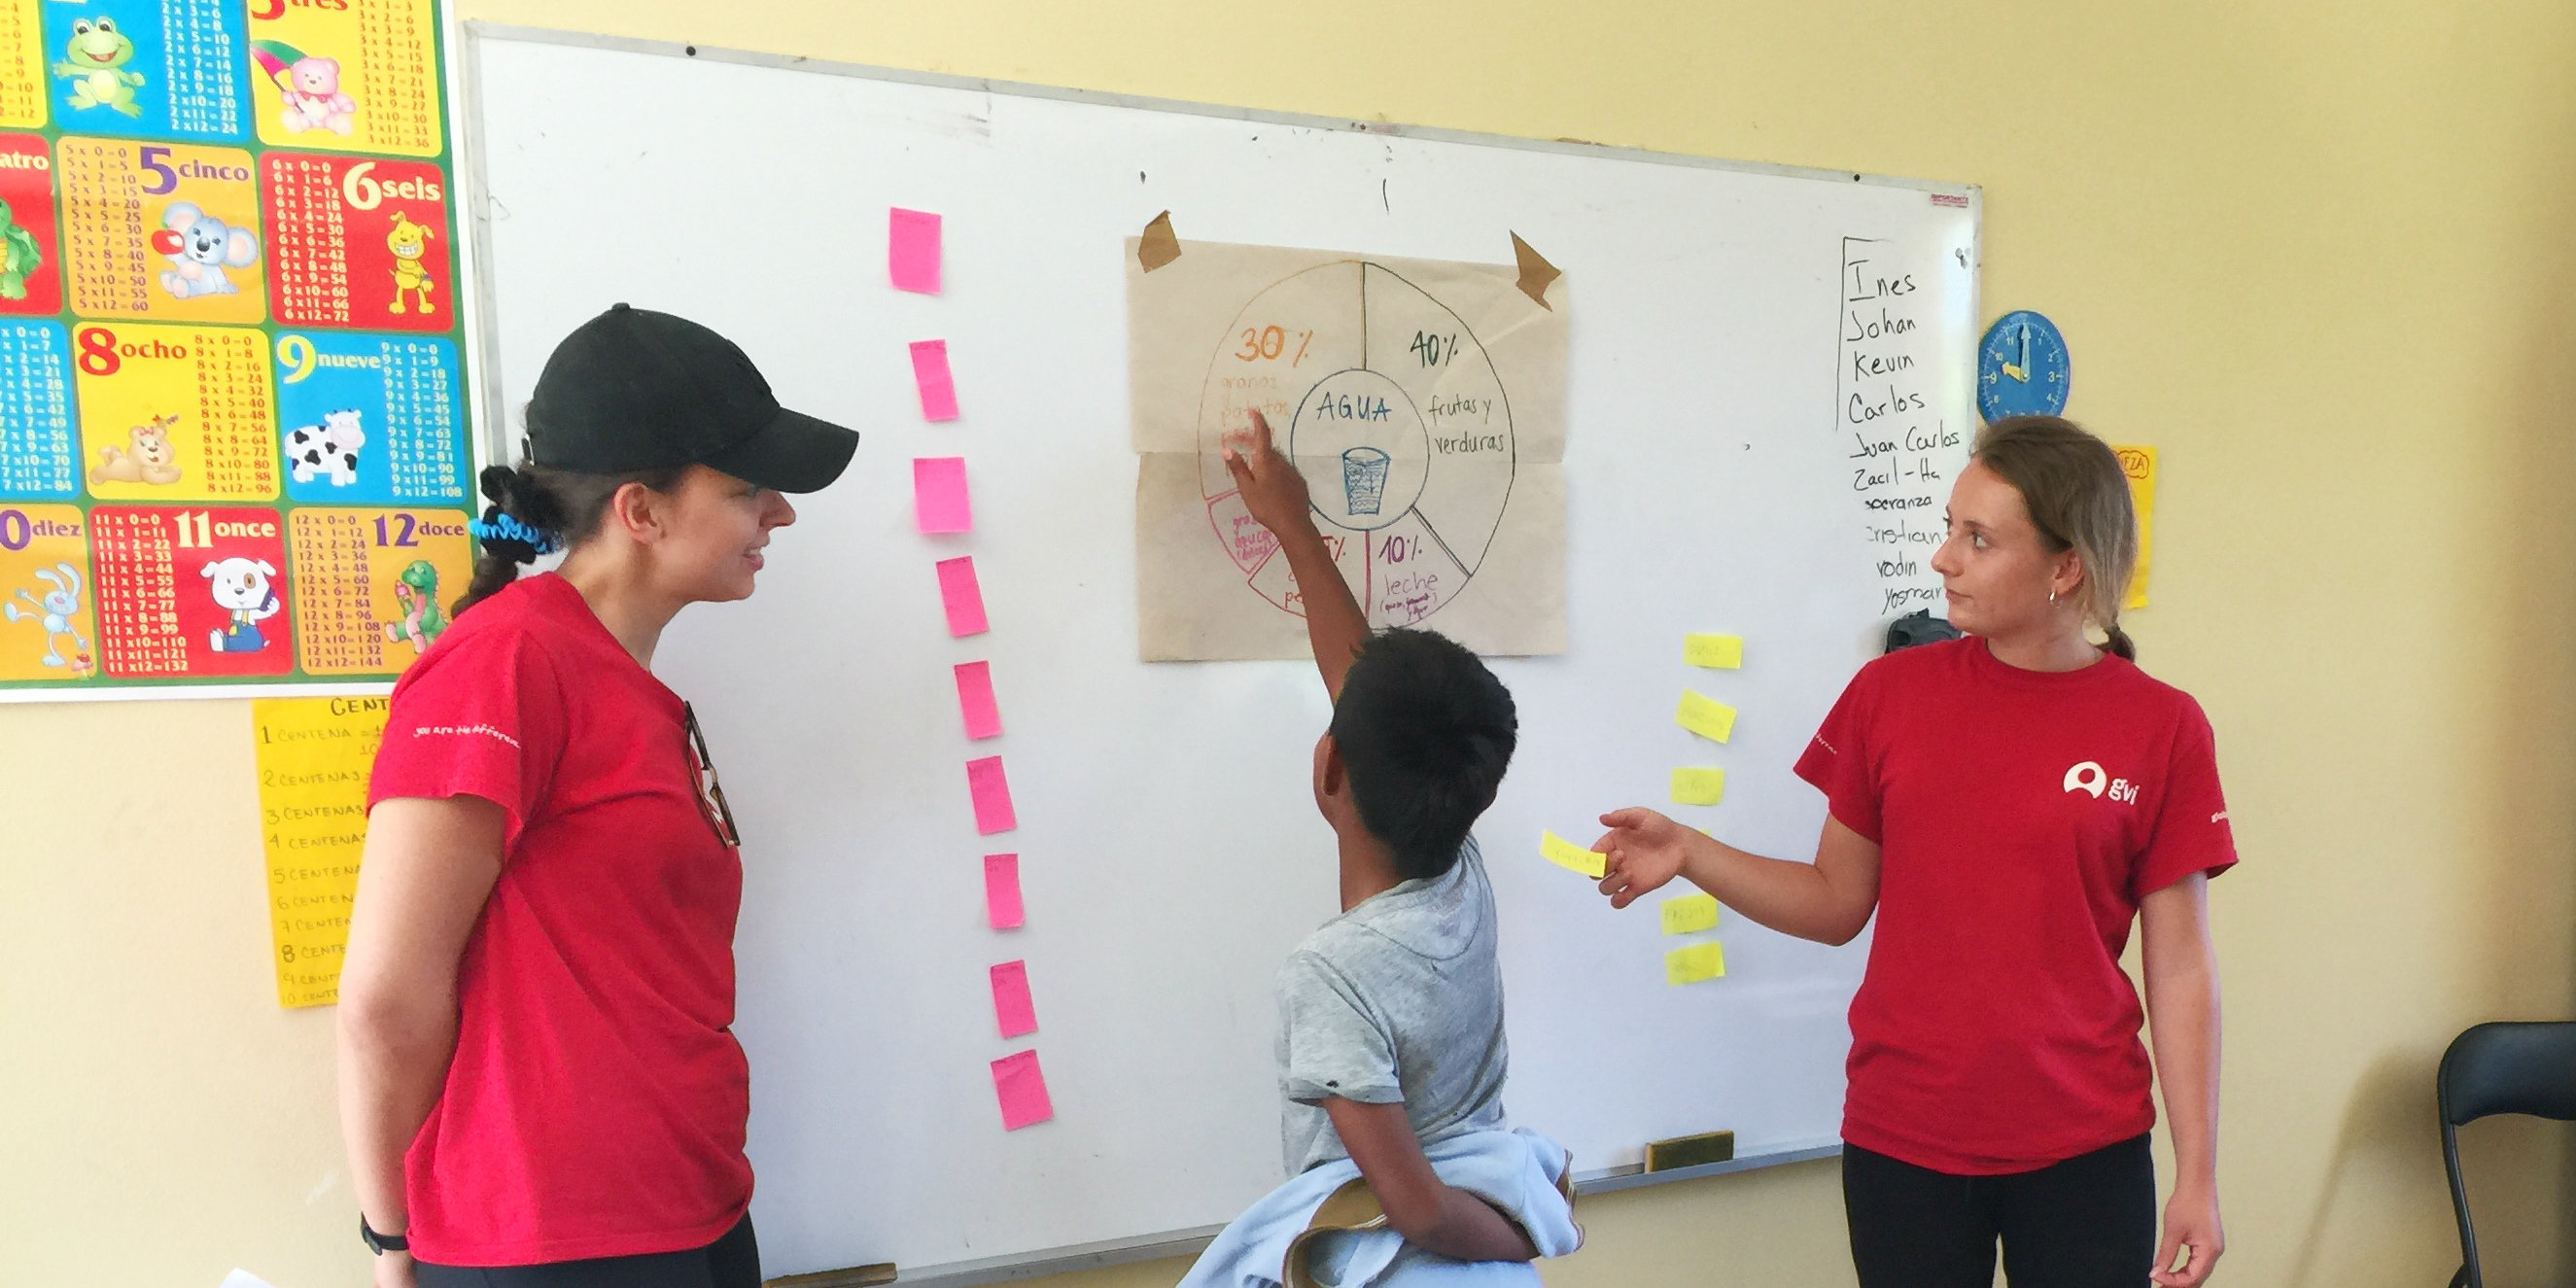 A learner answers a question in a lesson led by two GVI TEFL teachers.